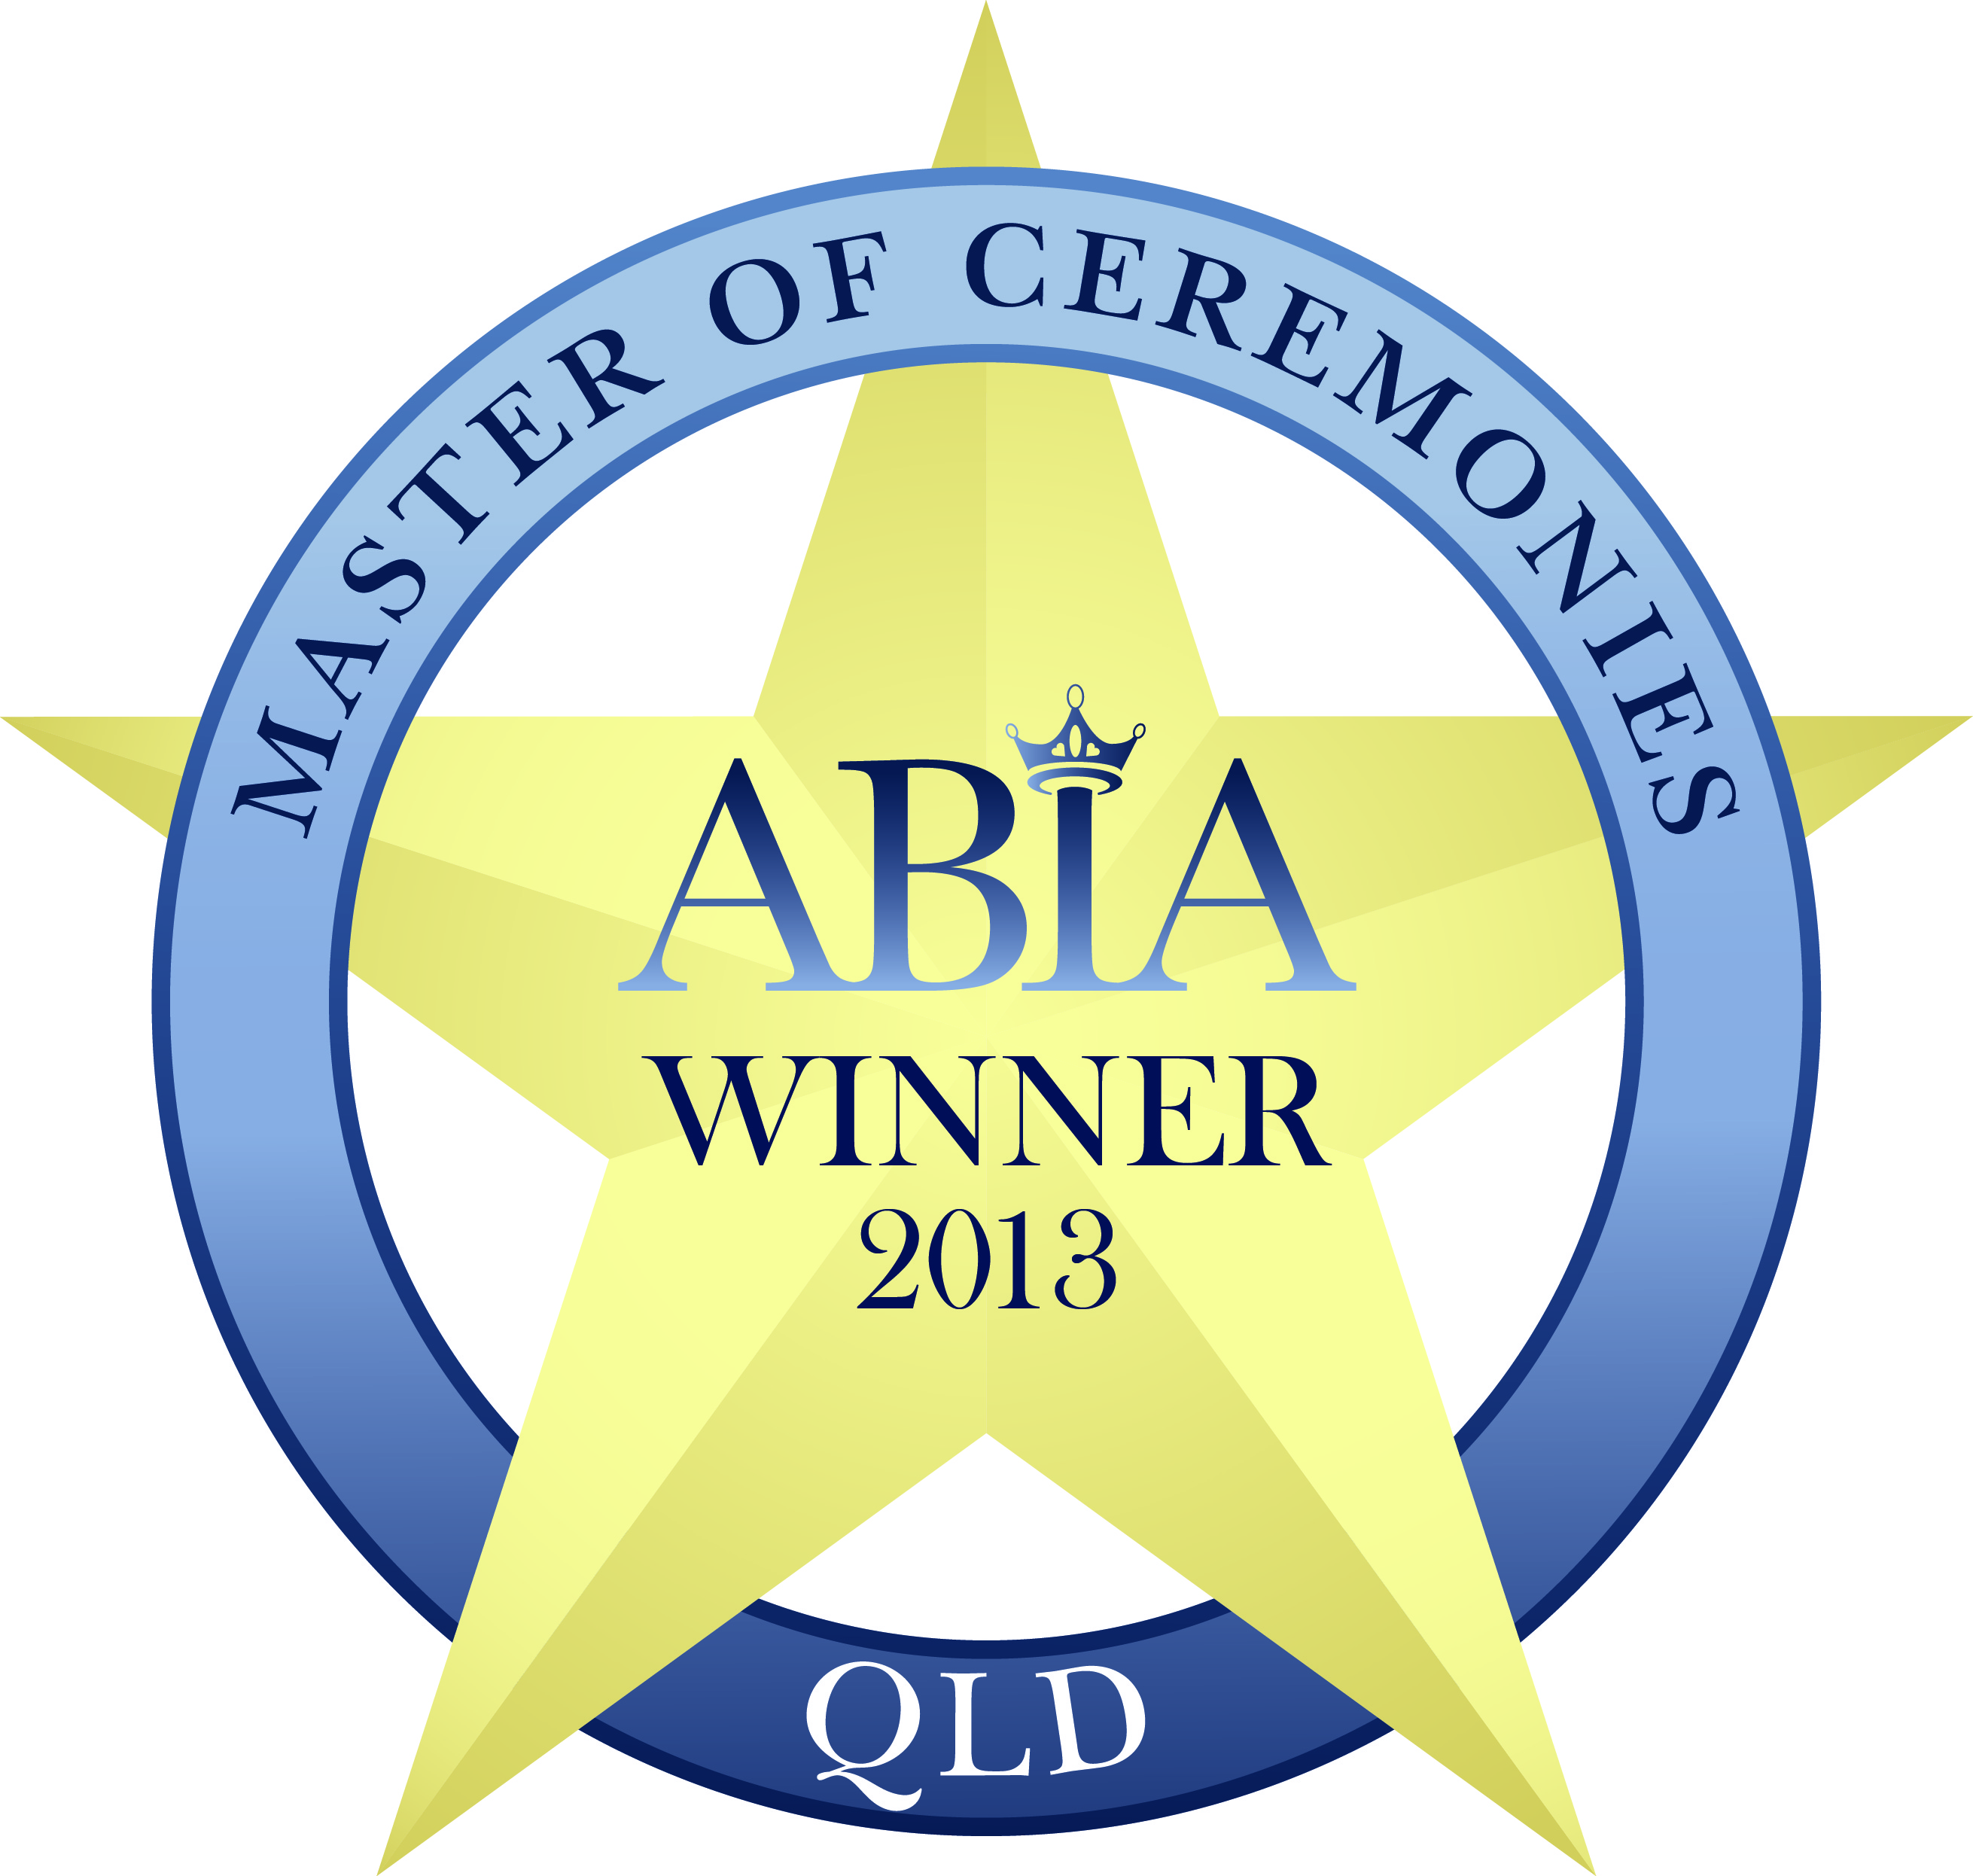 Wedding Entertainment Director® Glenn Mackay of G&M DJs in Brisbane, Queensland, AUSTRALIA has won several ABIA Awards